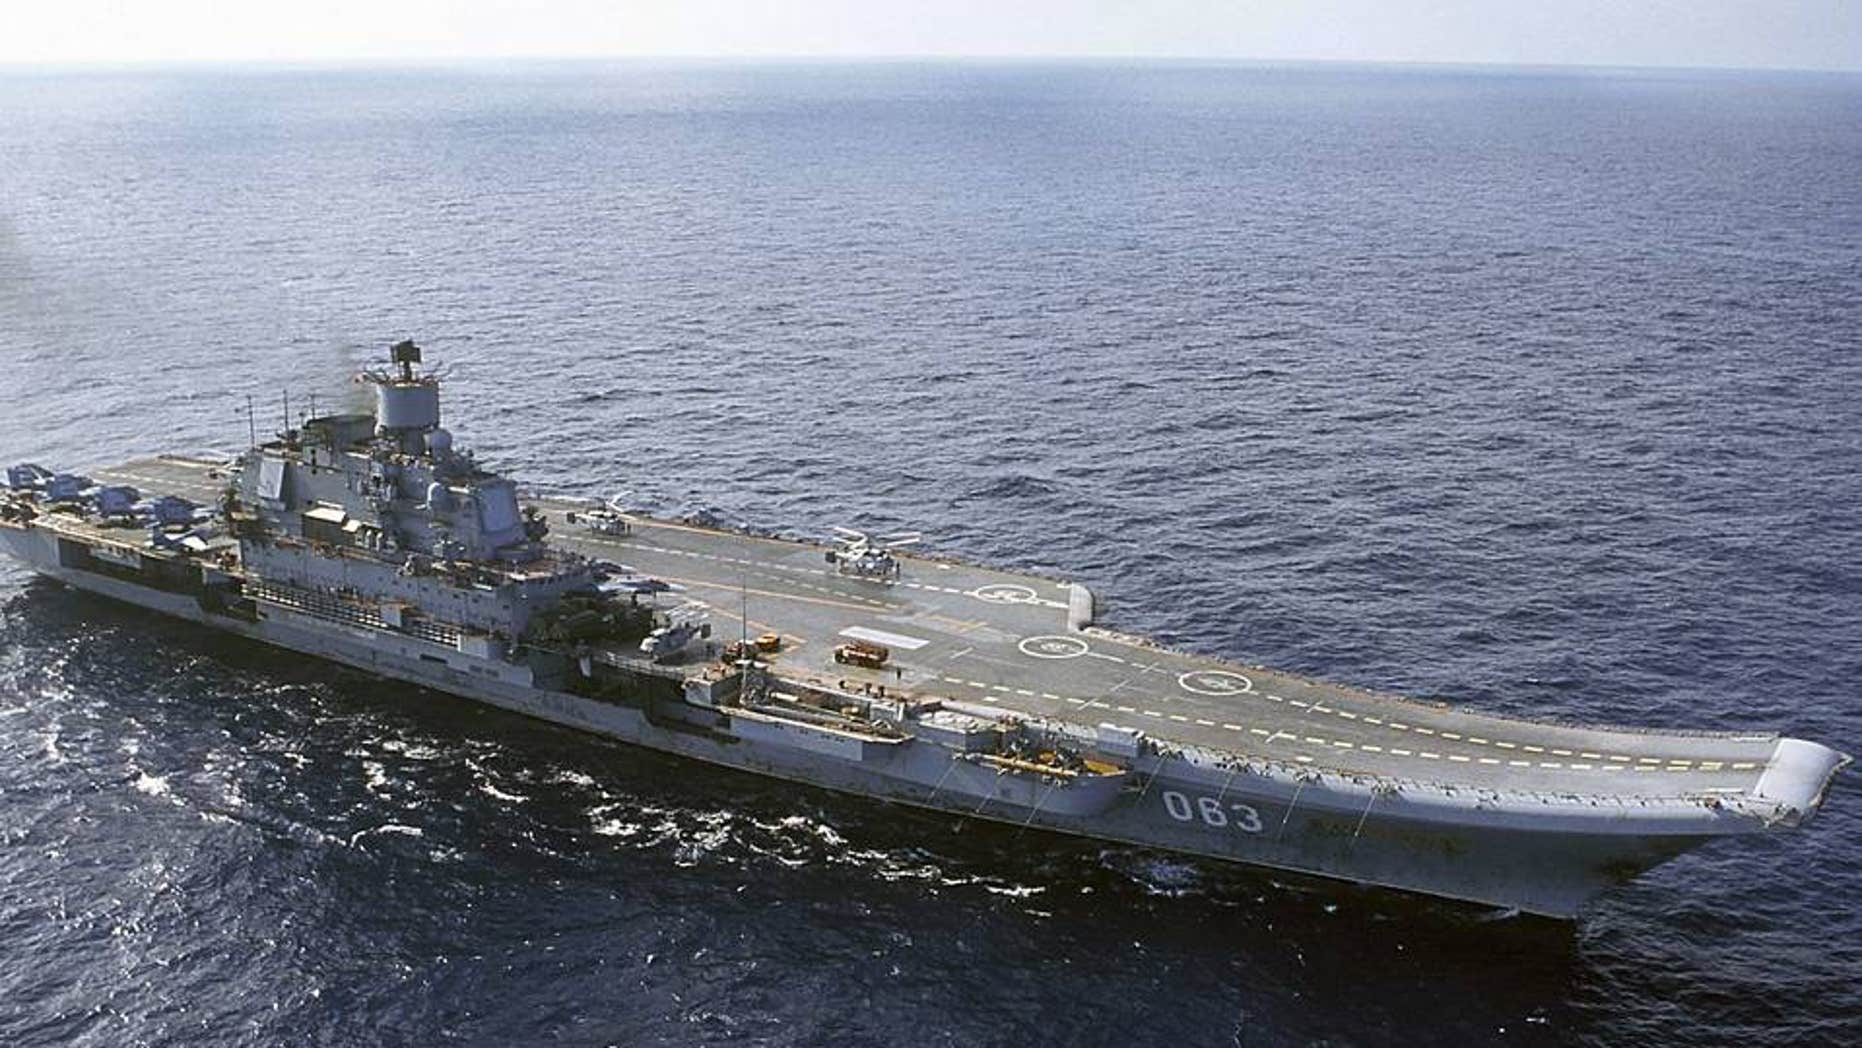 The Admiral Kuznetsov carrier sails in the Barents Sea, Russia.